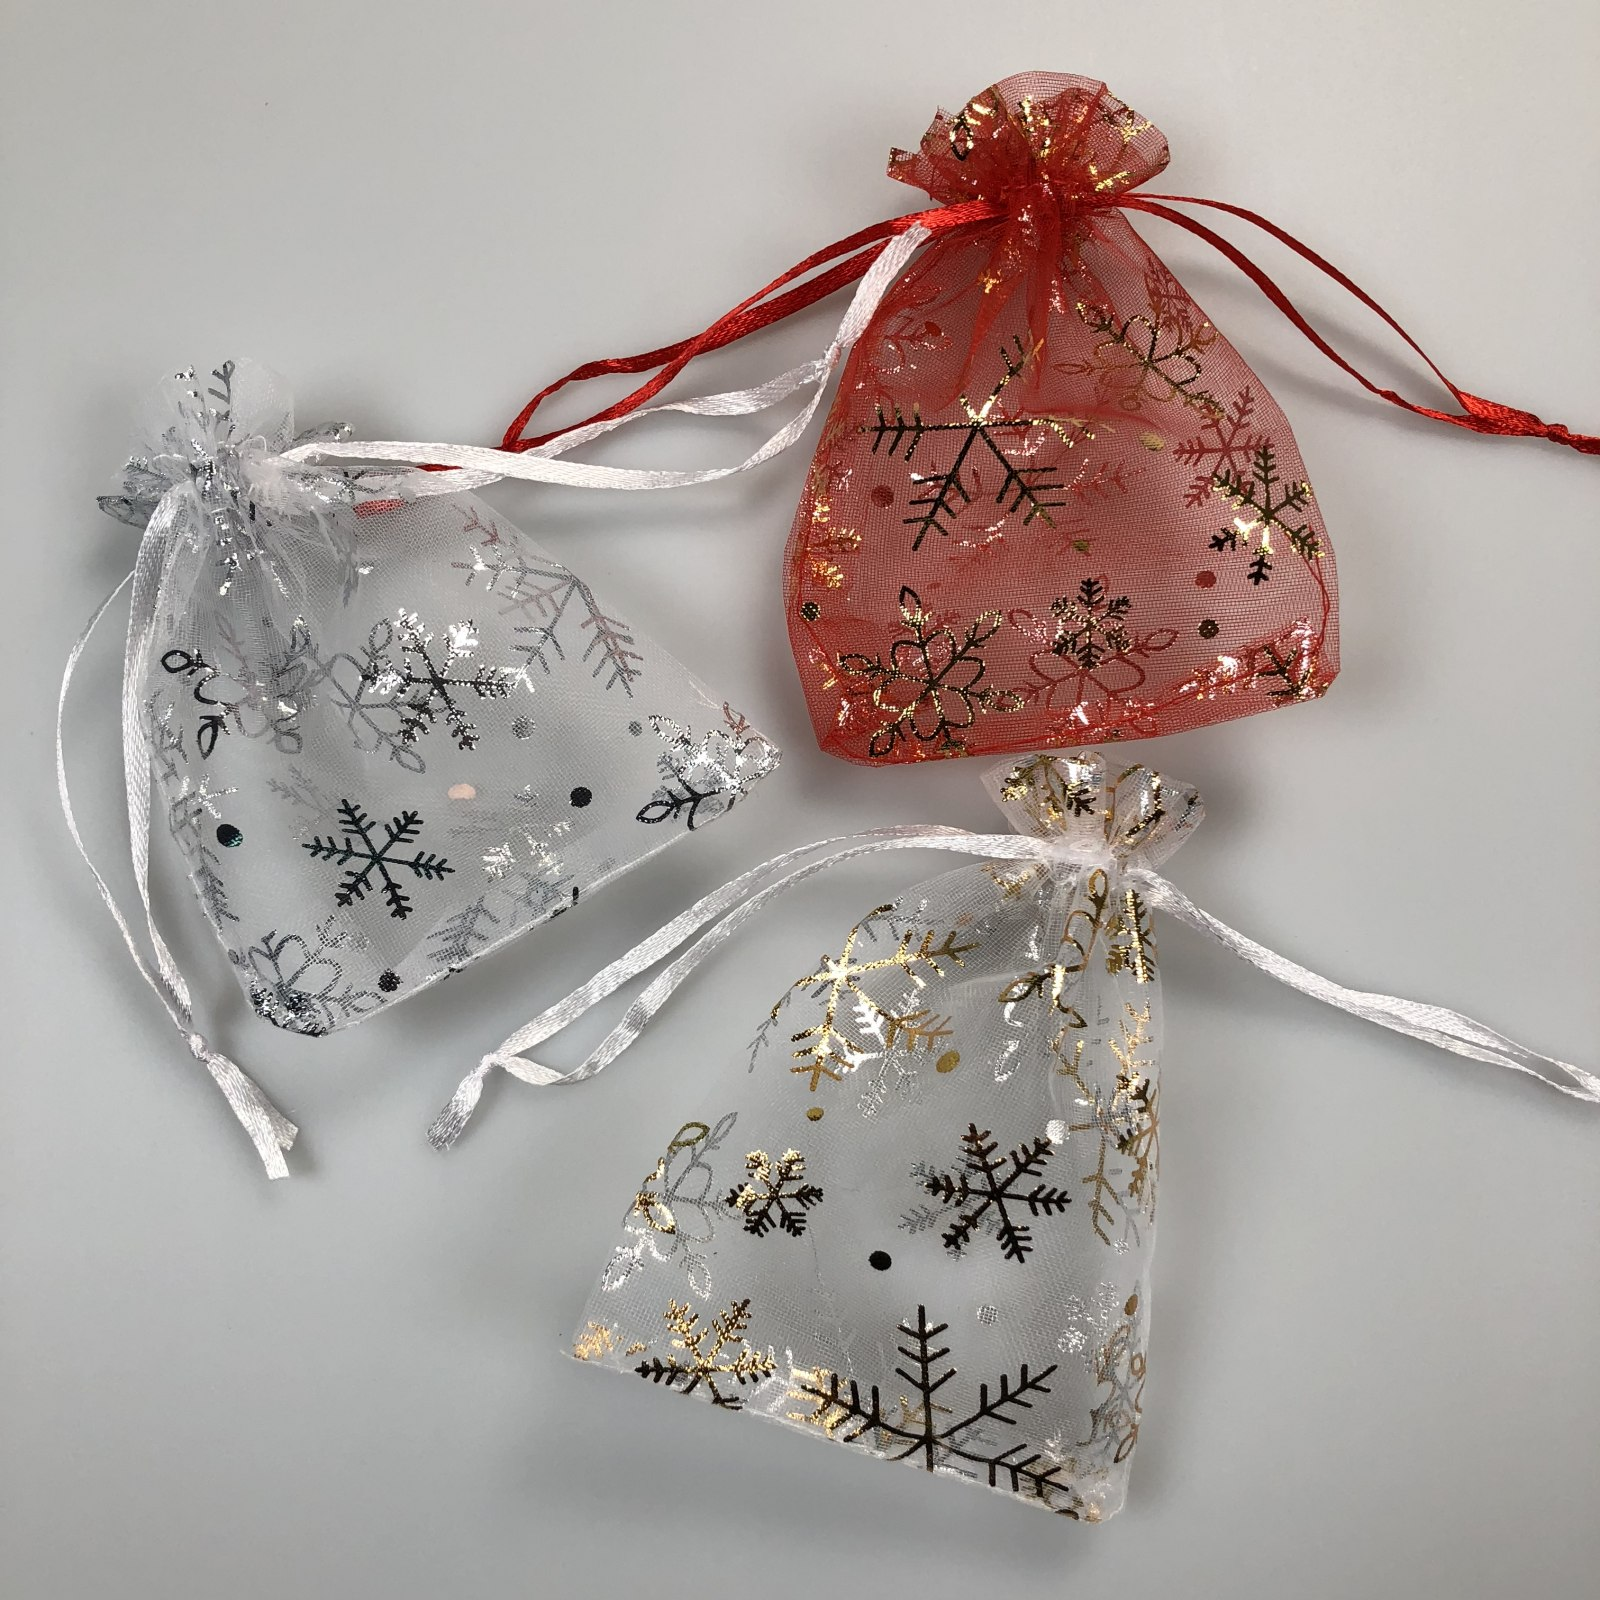 Details About Snowflake Organza Jewelry Bags Christmas Gift Candy Wedding Favour Xmas Pouches